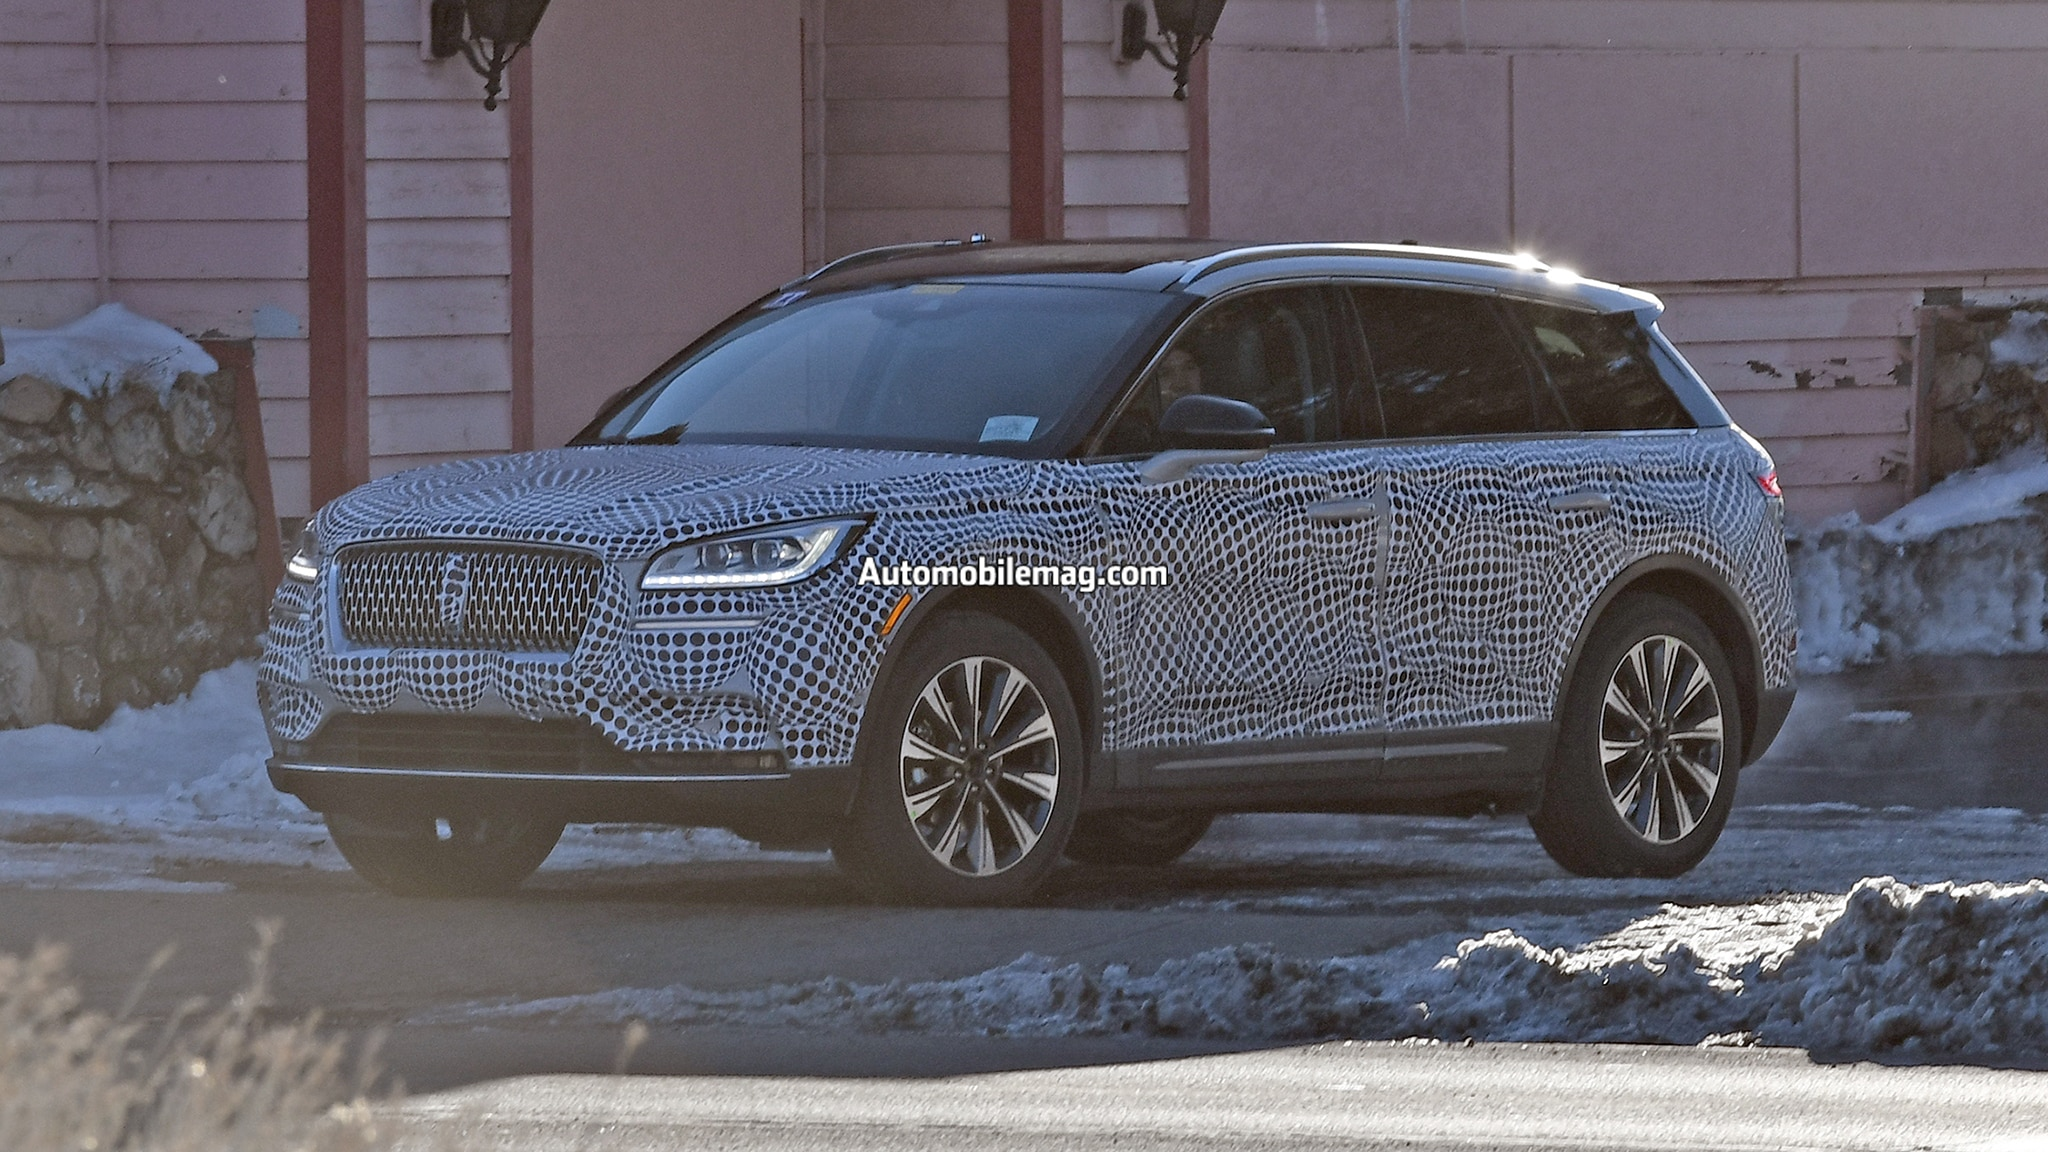 2020 Lincoln Corsair: Here's What We Know | Automobile ...